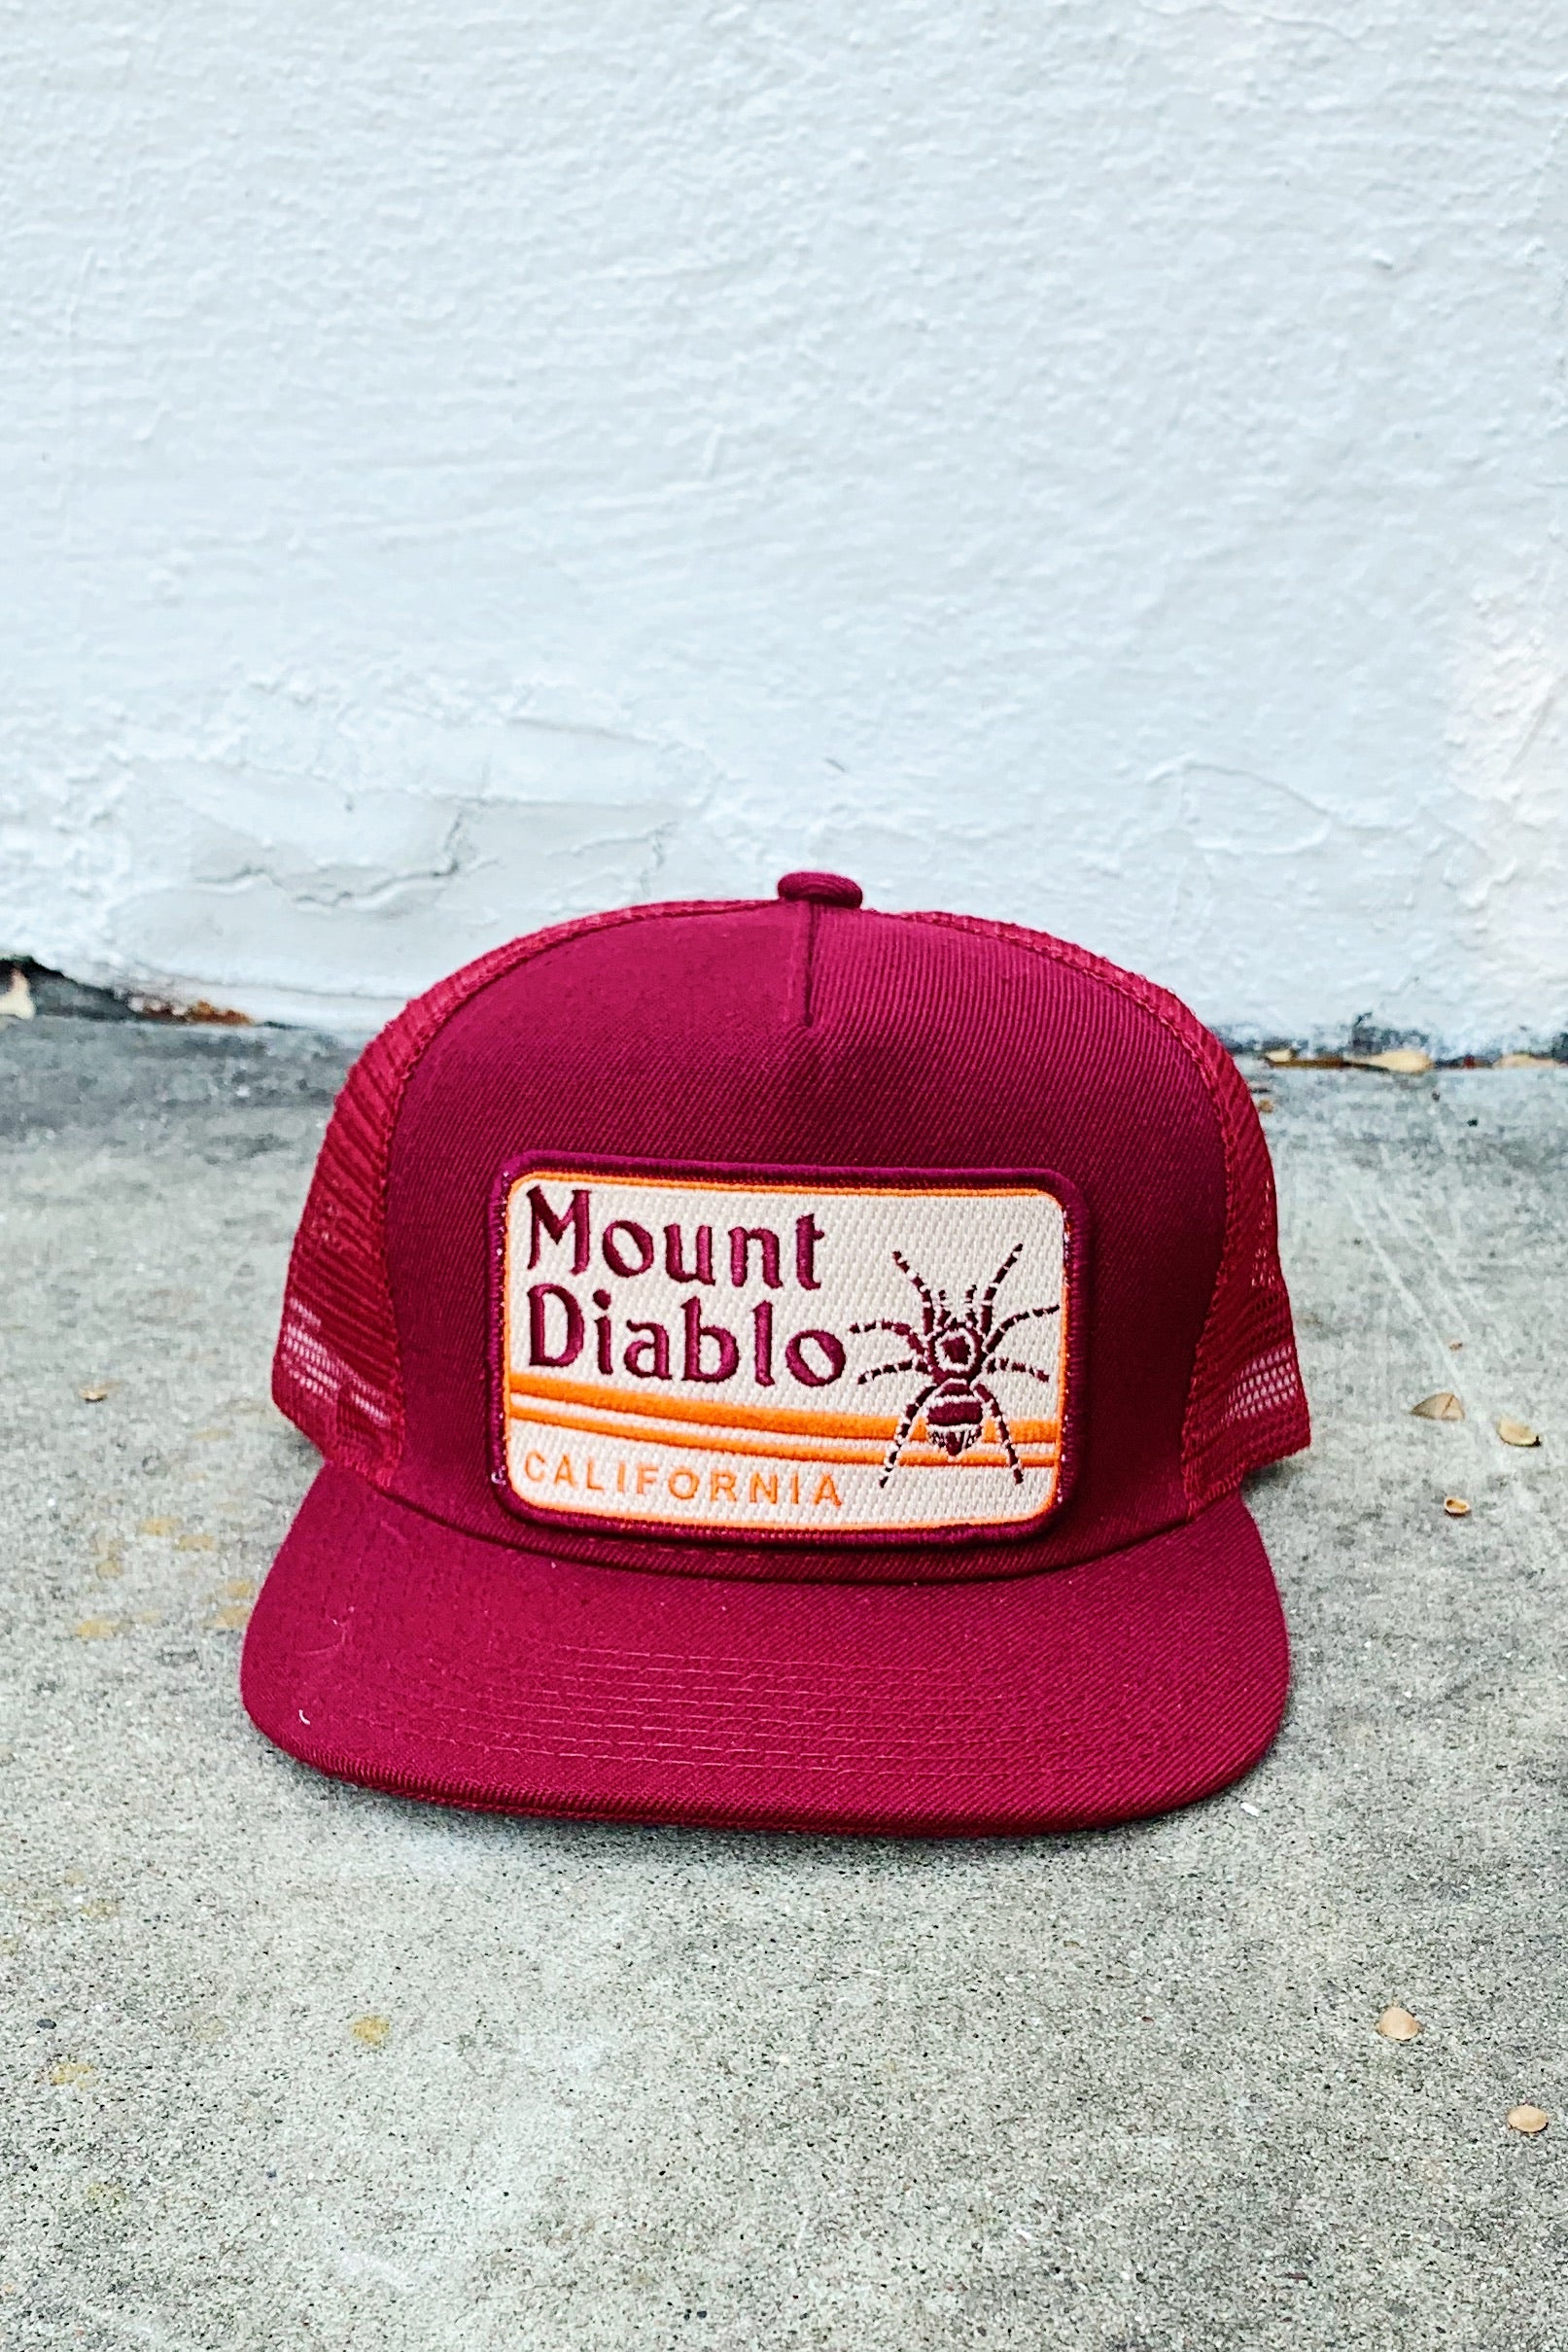 Bart Bridge Mount Diablo Unisex Trucker Hat-Burgundy